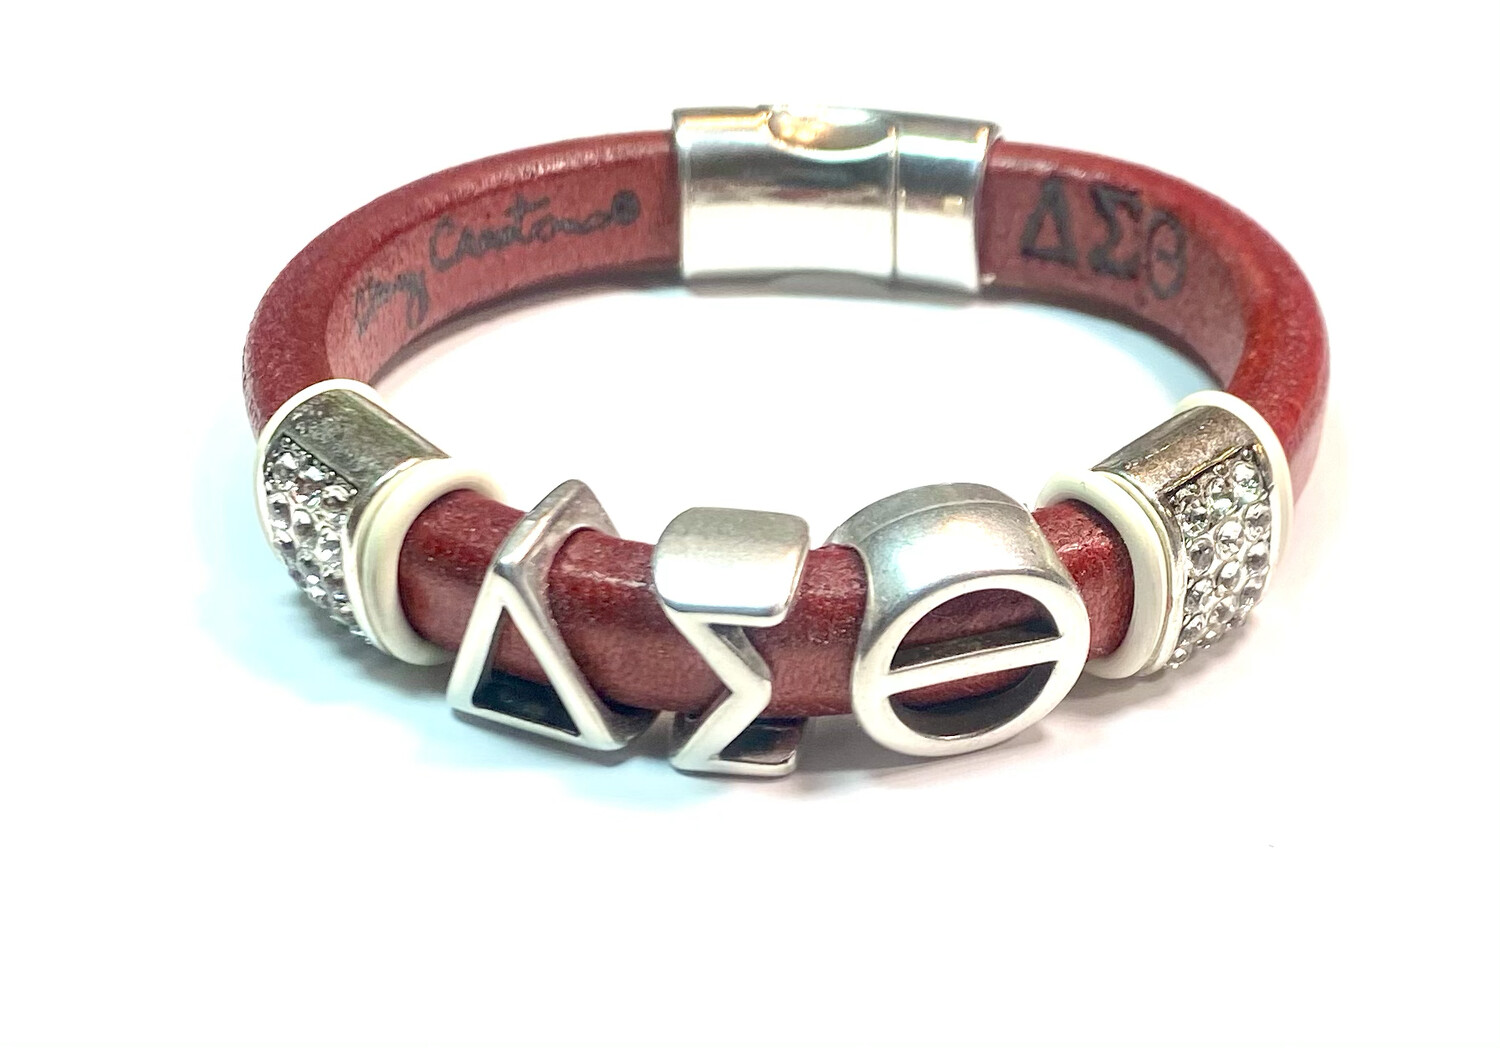 Bracelet | Red Leather Delta Sigma Theta With Clear Bling And White Rings Classy Creations Originals